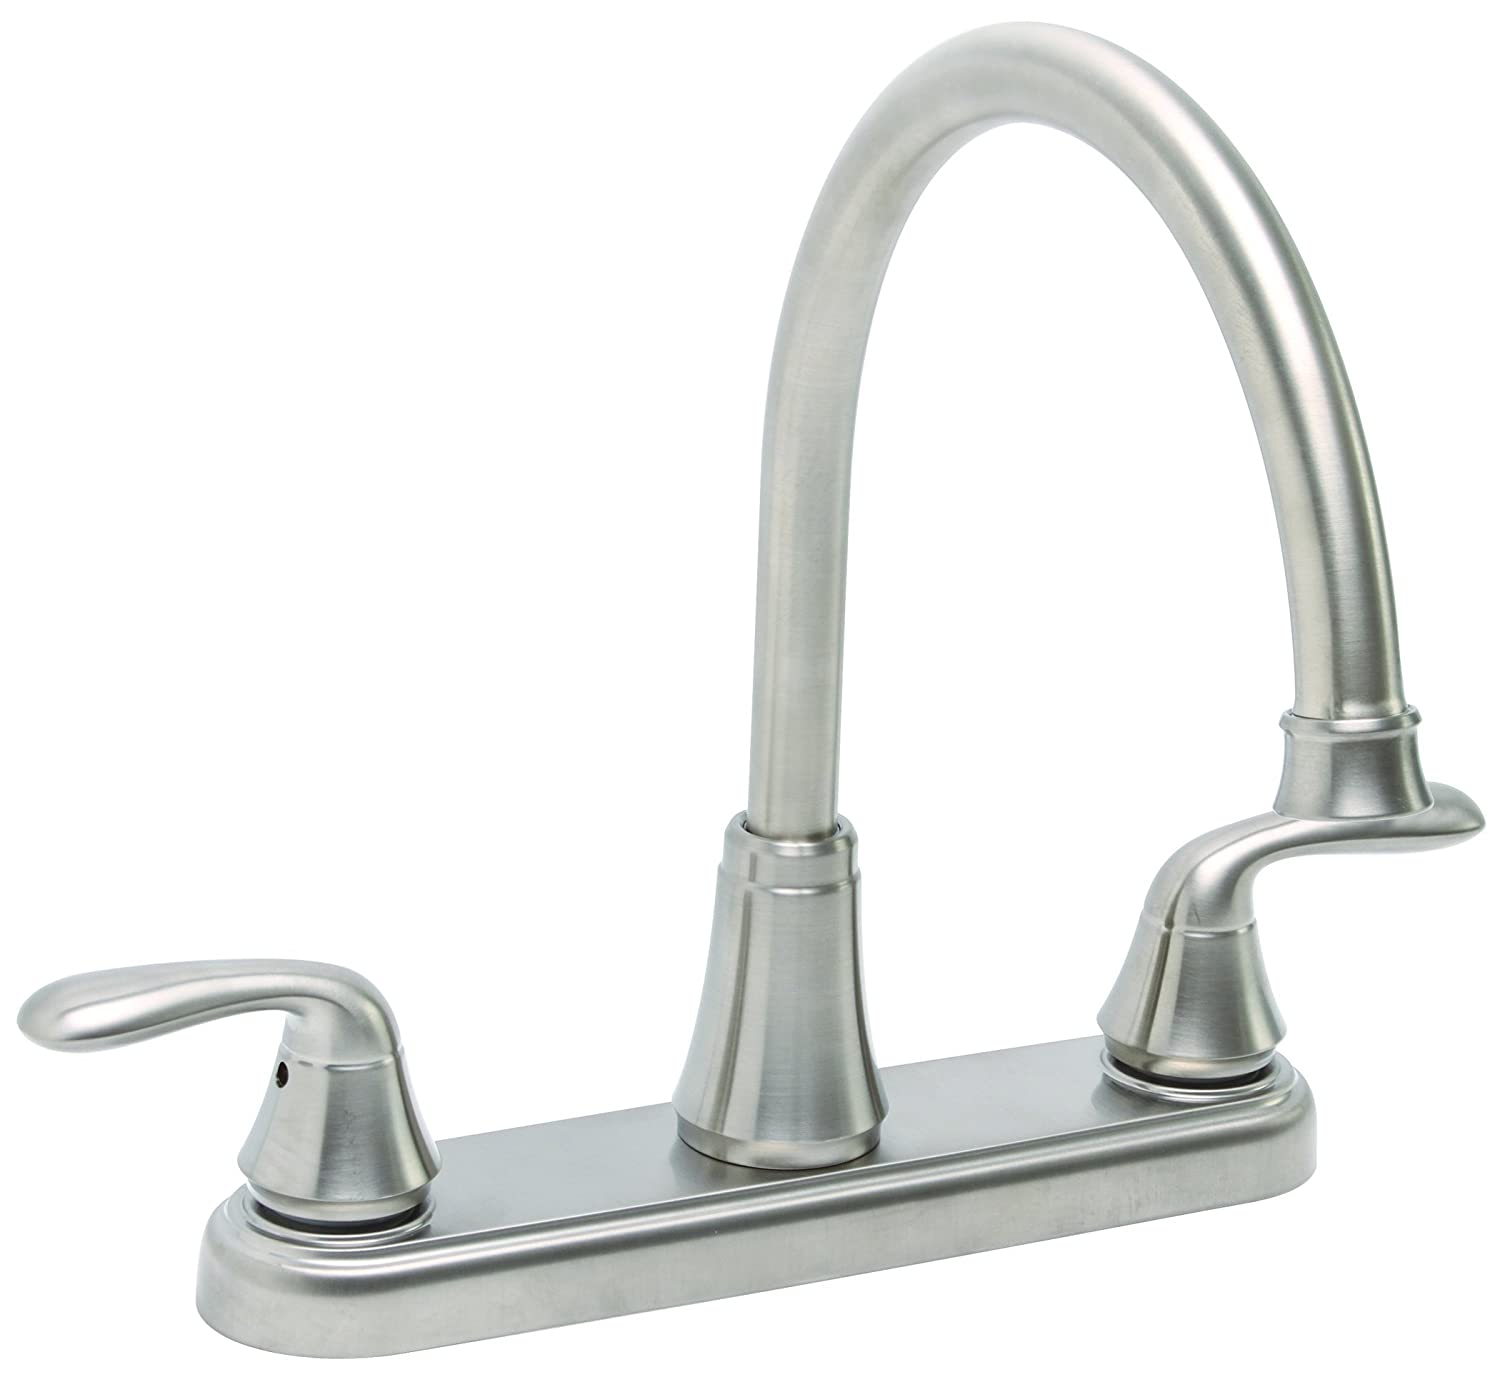 outlet Premier 126966 Waterfront Kitchen Faucet With Two Handles, Brushed Nickel,  Lead Free